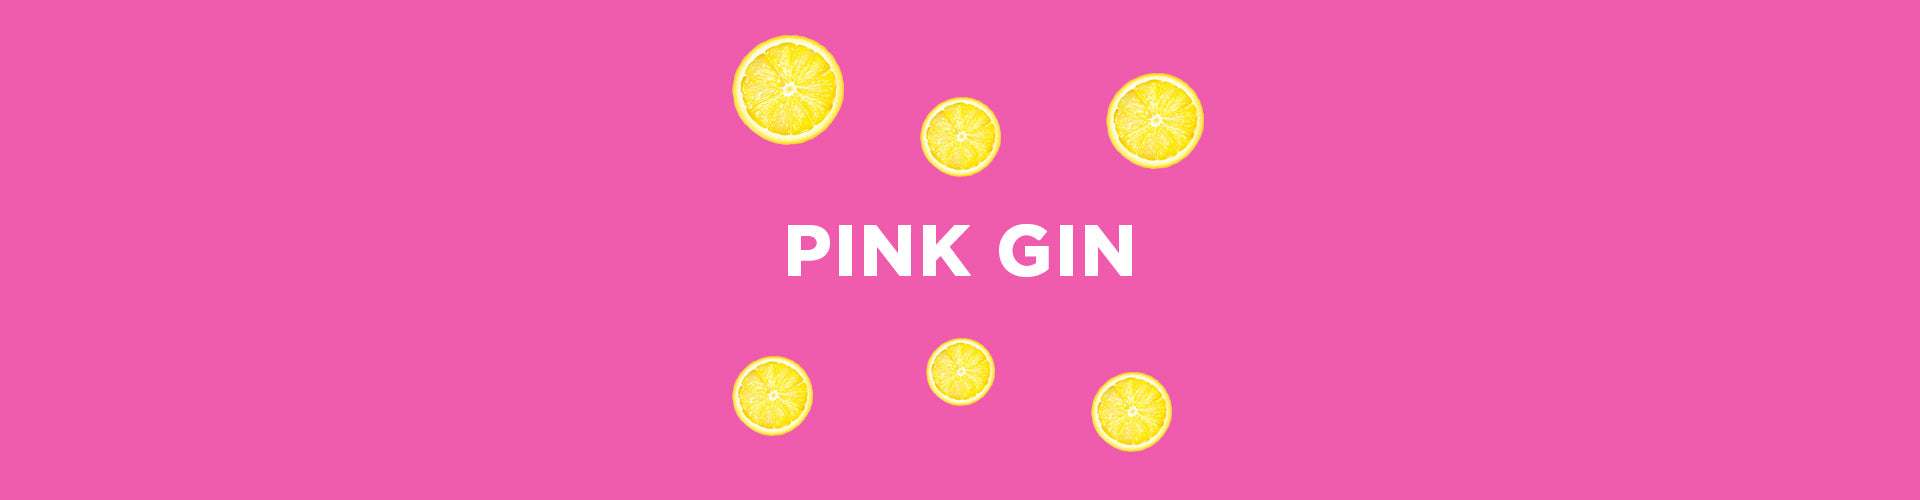 Can You Say Pink Gin?